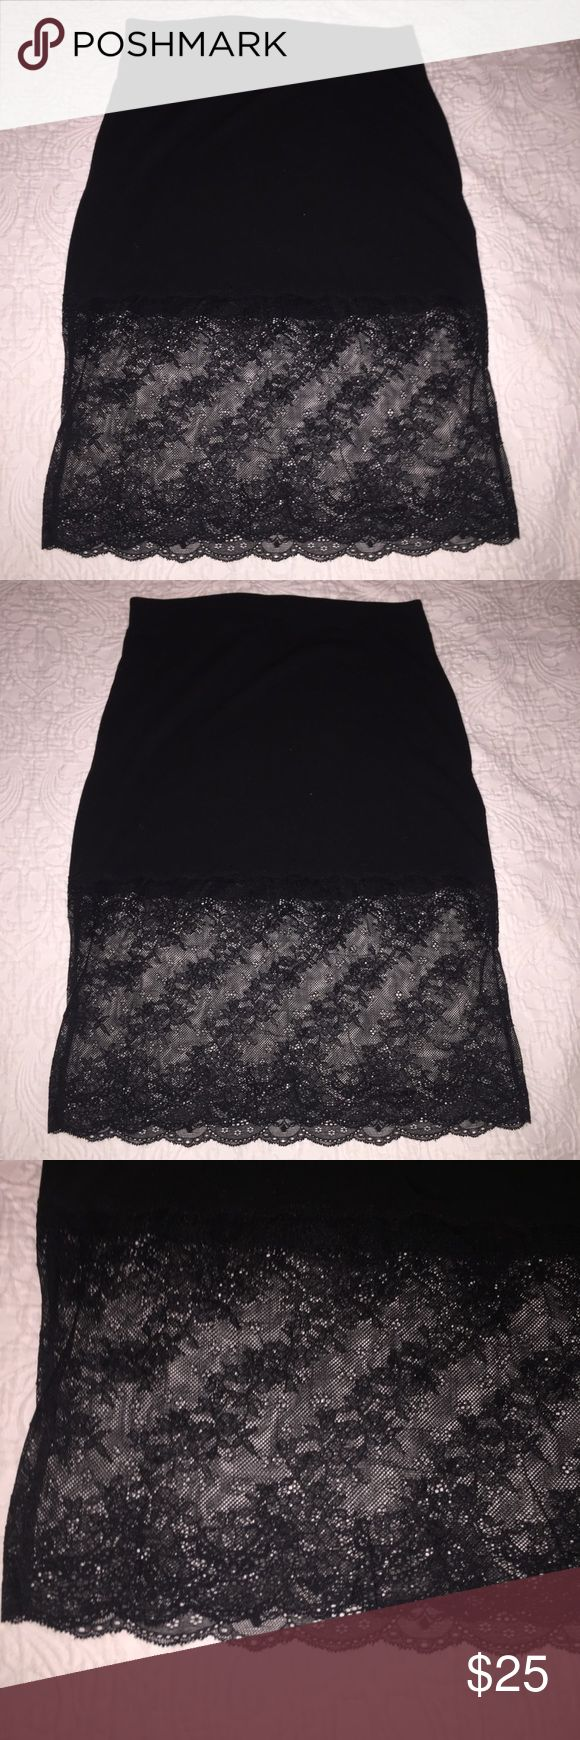 Urban Outfitters Kimchi Blue Black Lace Trim Skirt Urban Outfitters Kimchi Blue Black Lace Trim Skirt. Gorgeous Wide Lace at Hem. Size M Urban Outfitters Skirts Pencil